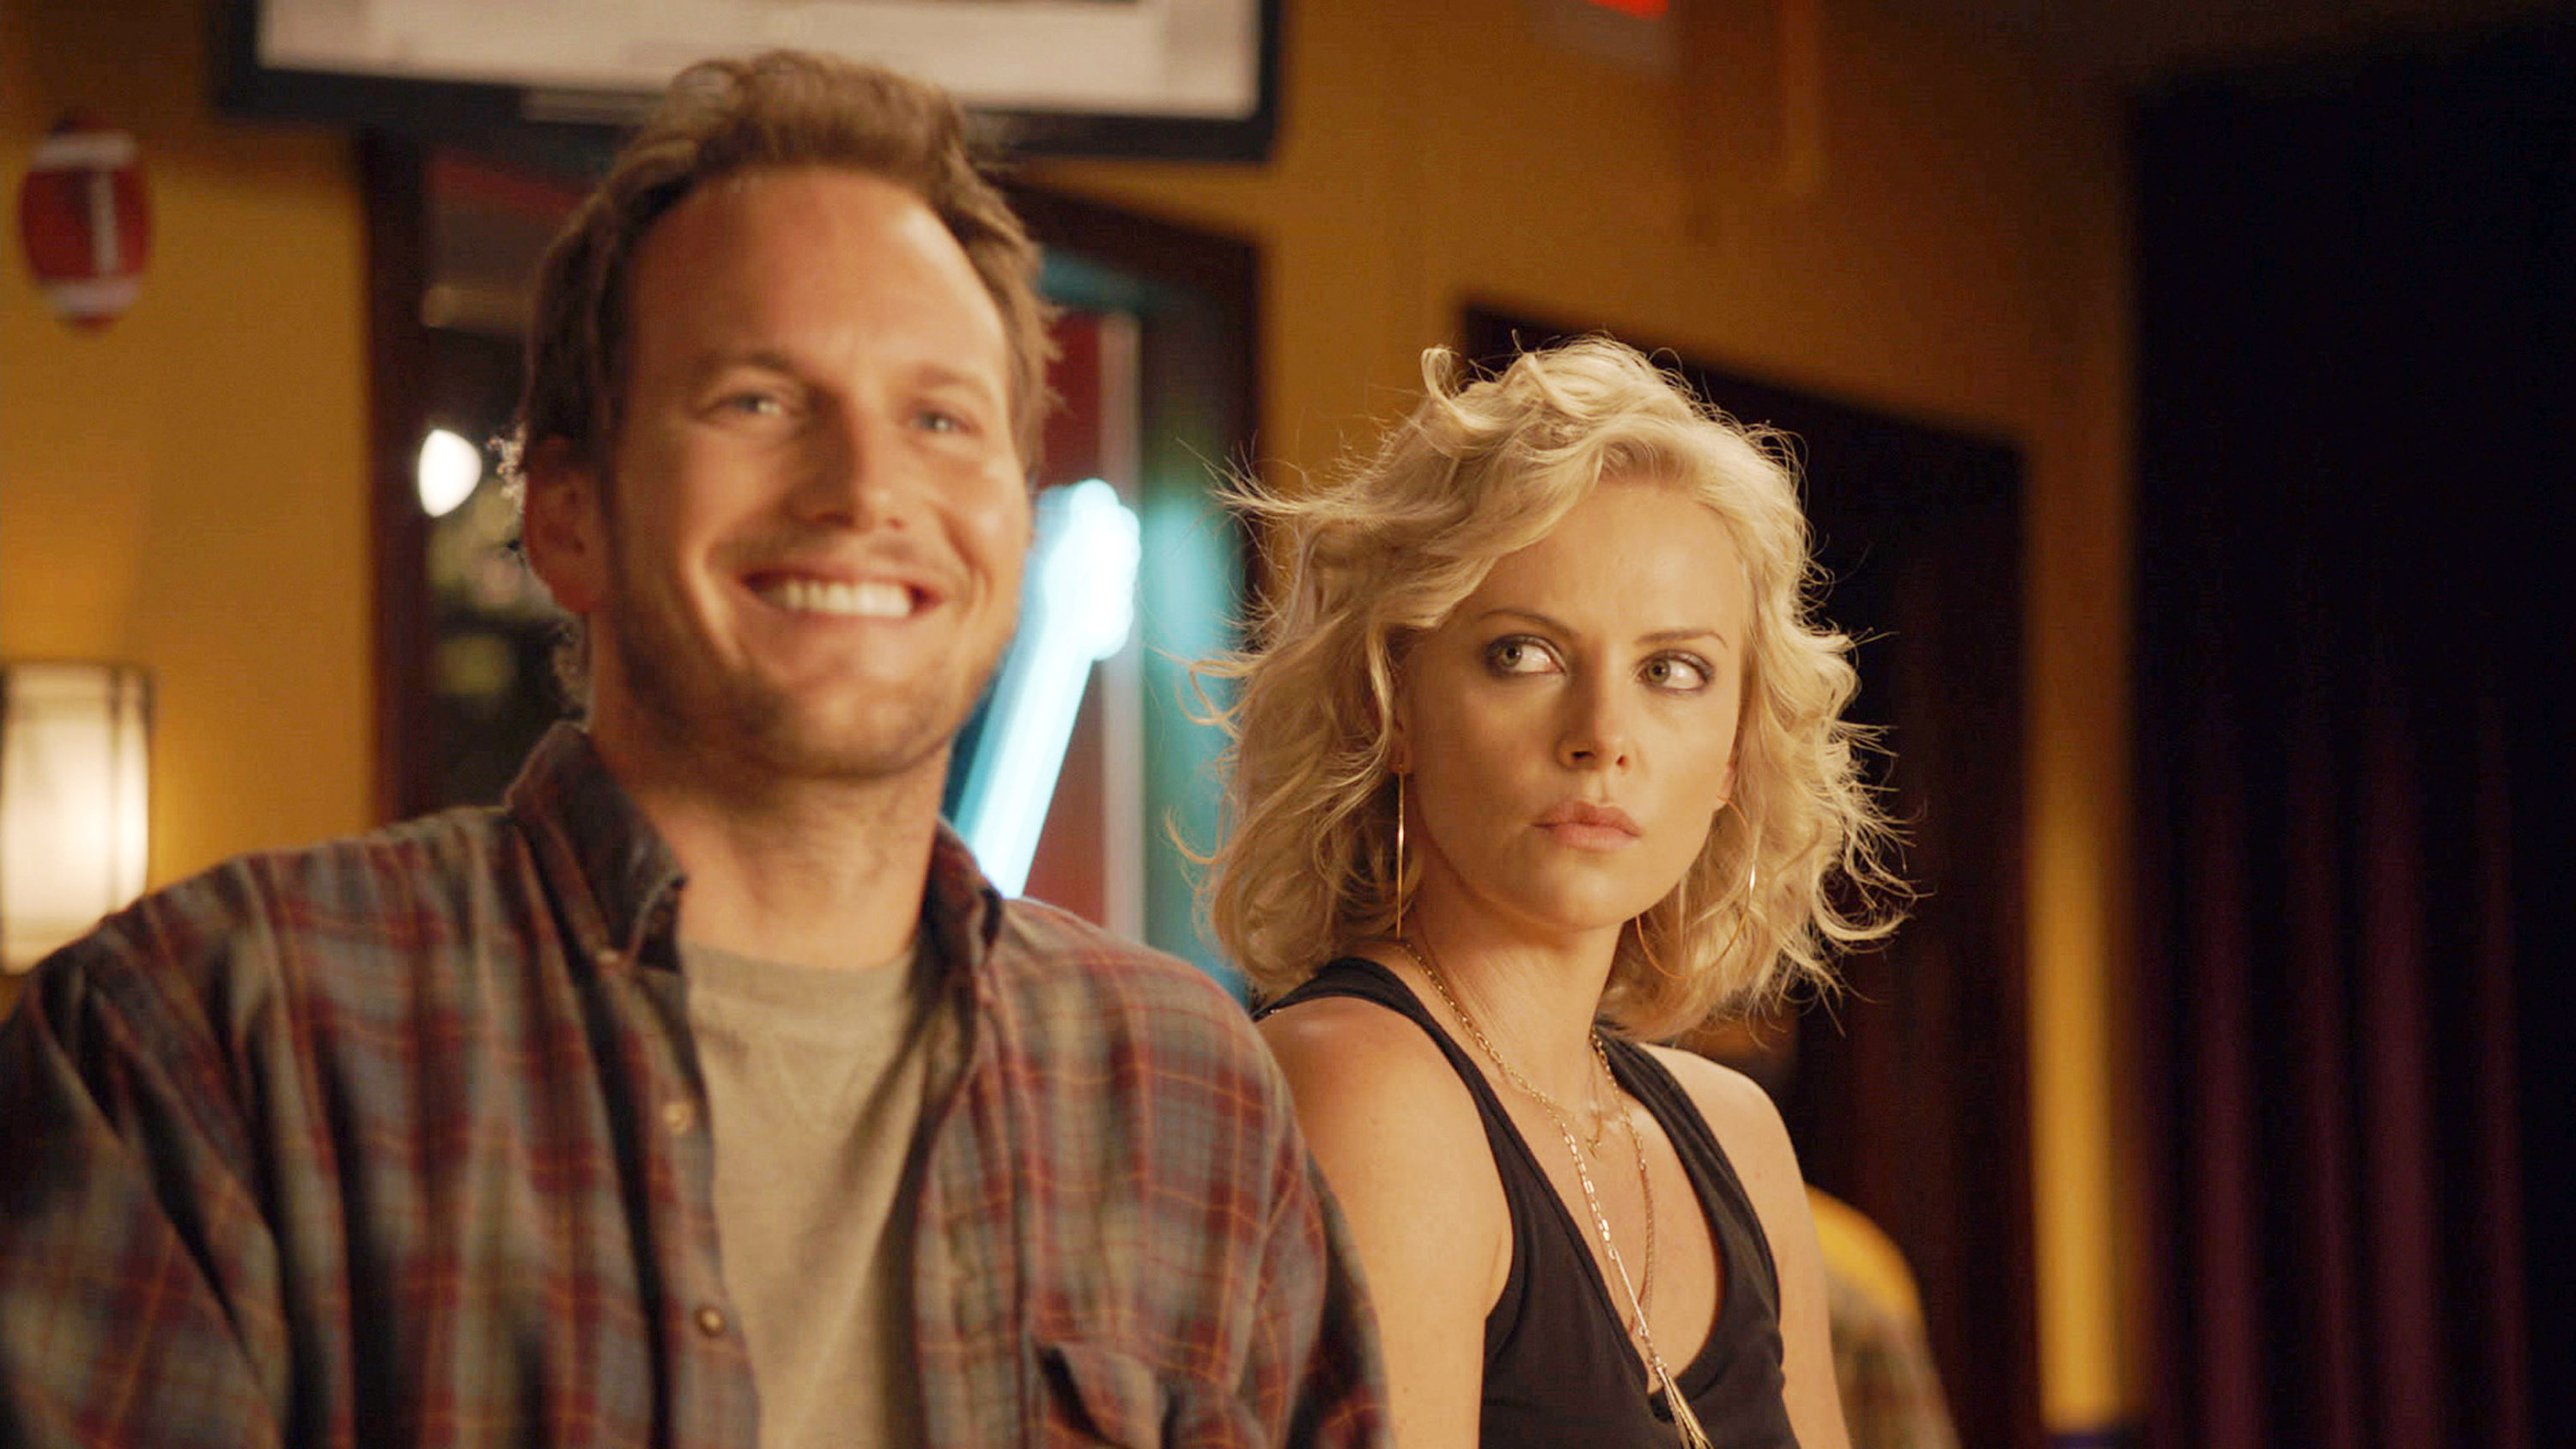 Patrick Wilson smiling and Charlize Theron looking at him and not smiling